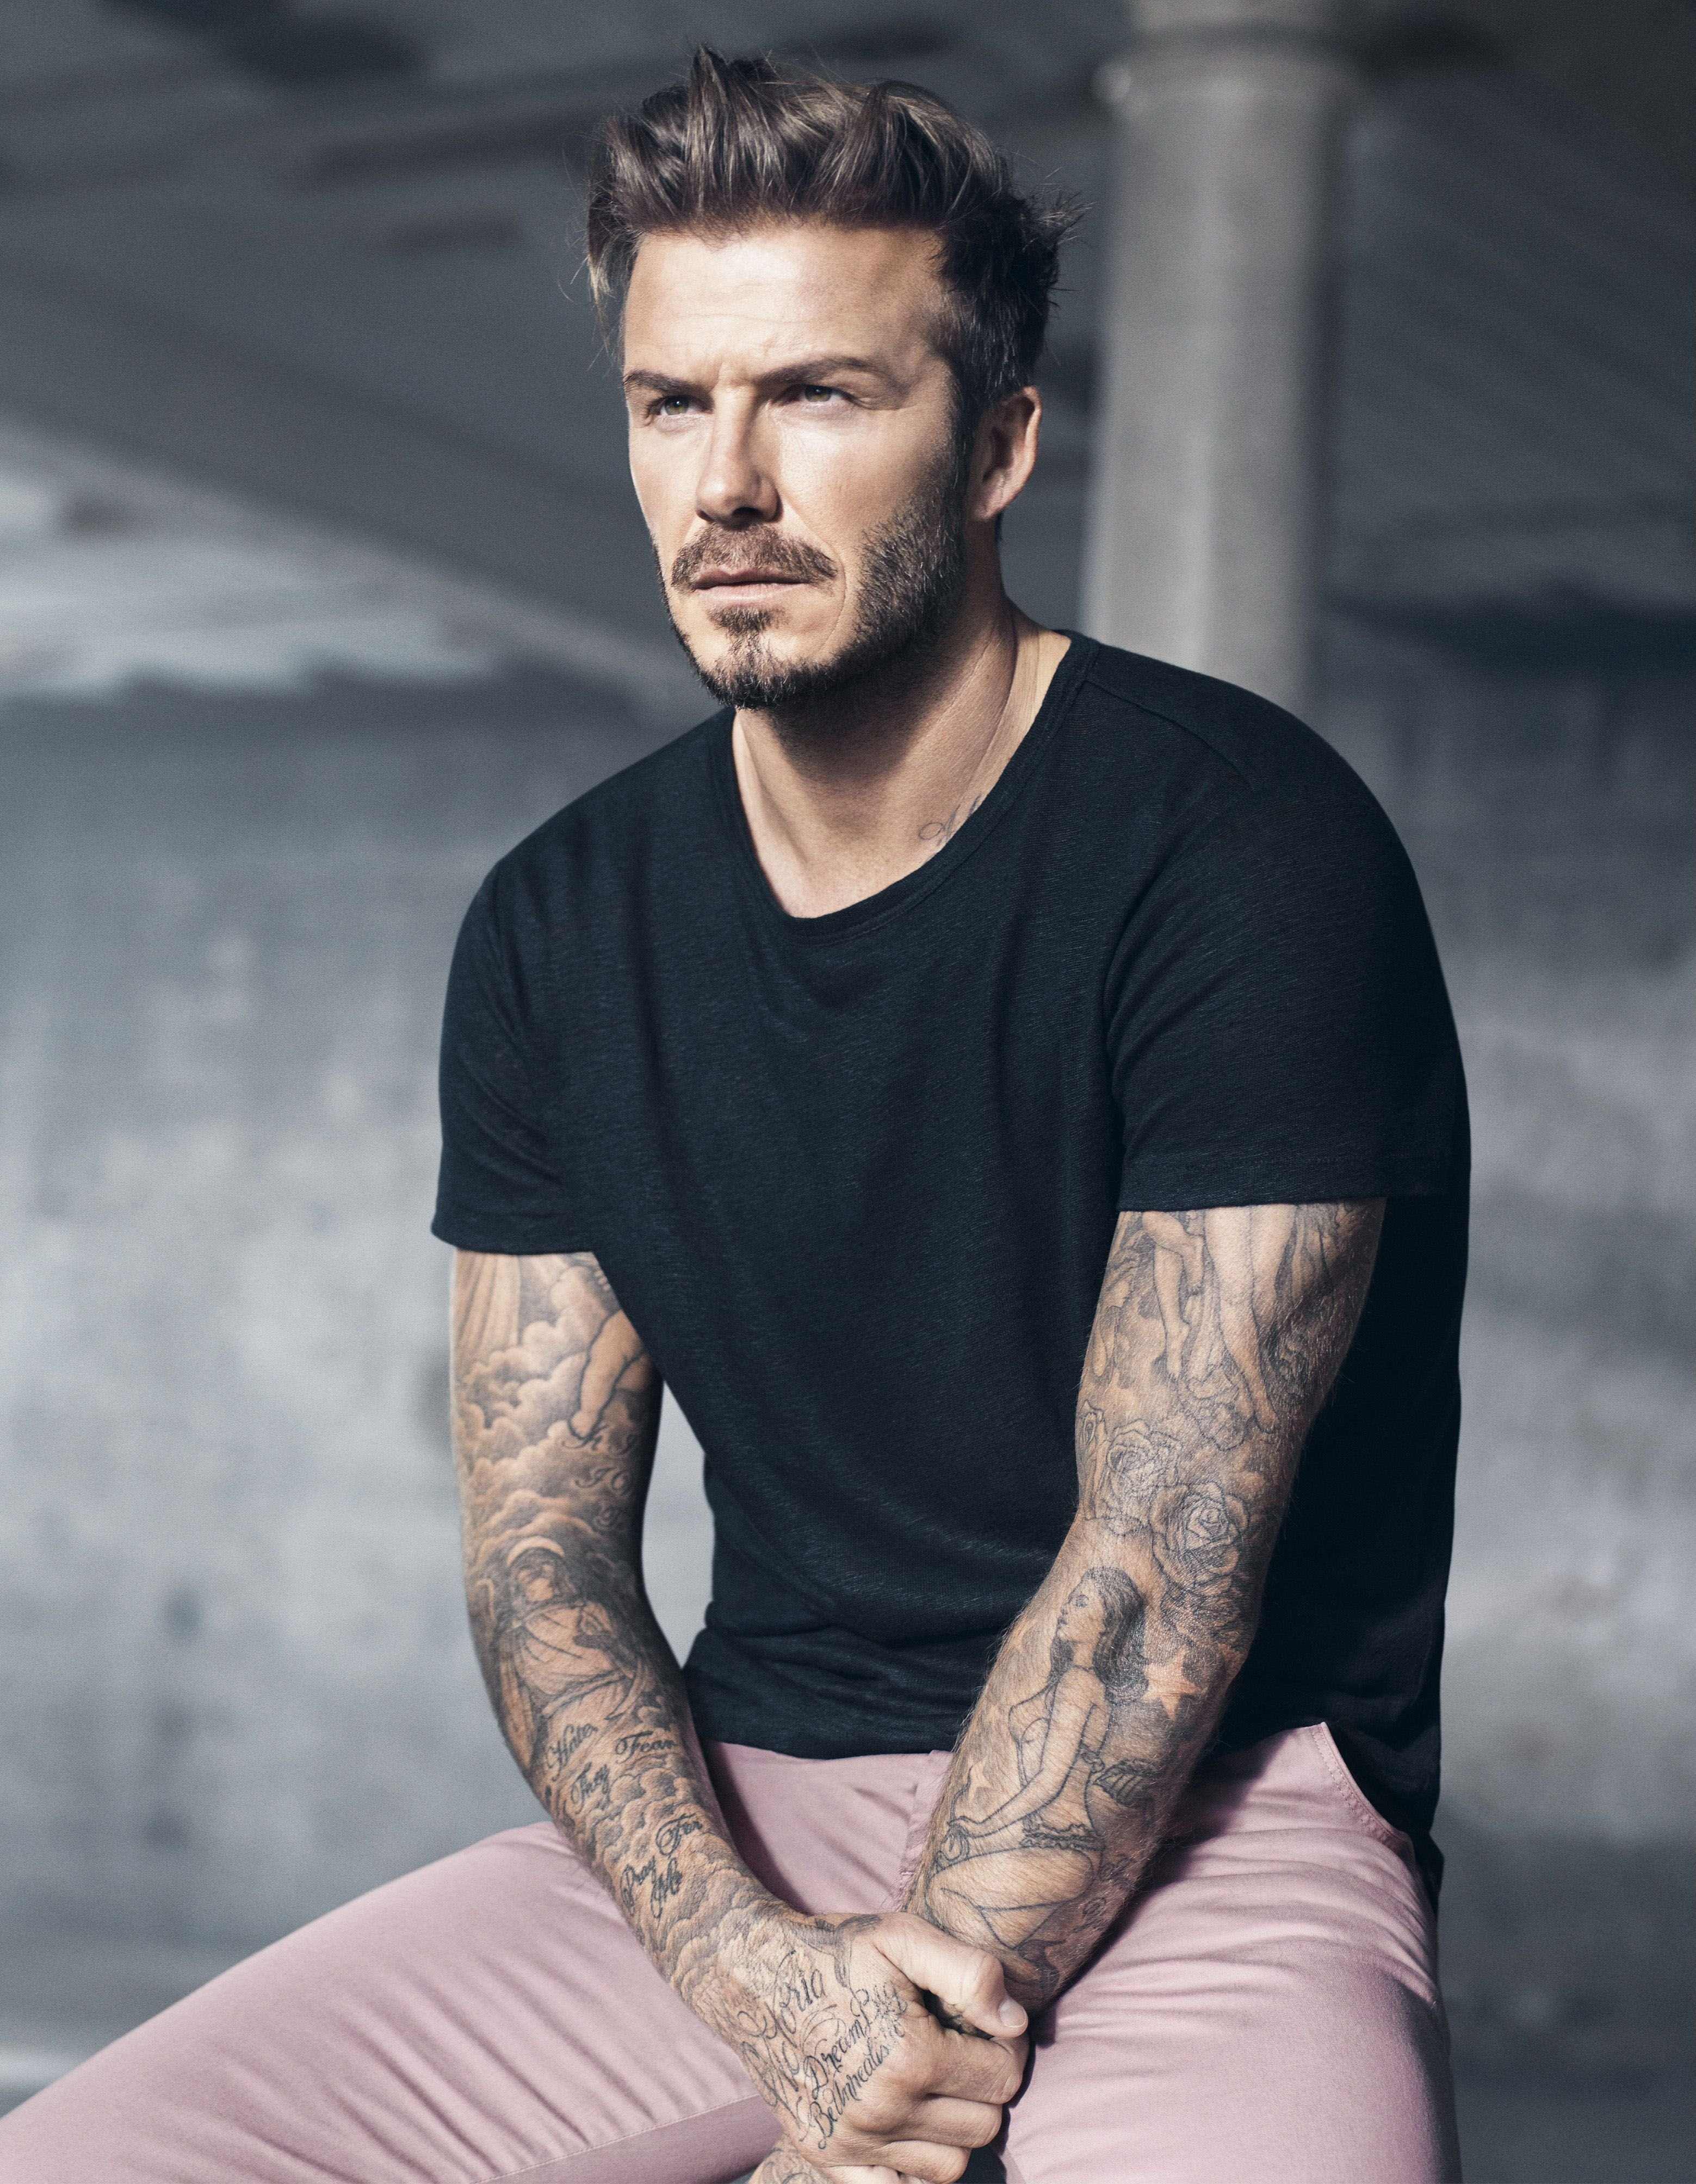 Watch David Beckham To Launch His Own Clothing Line video